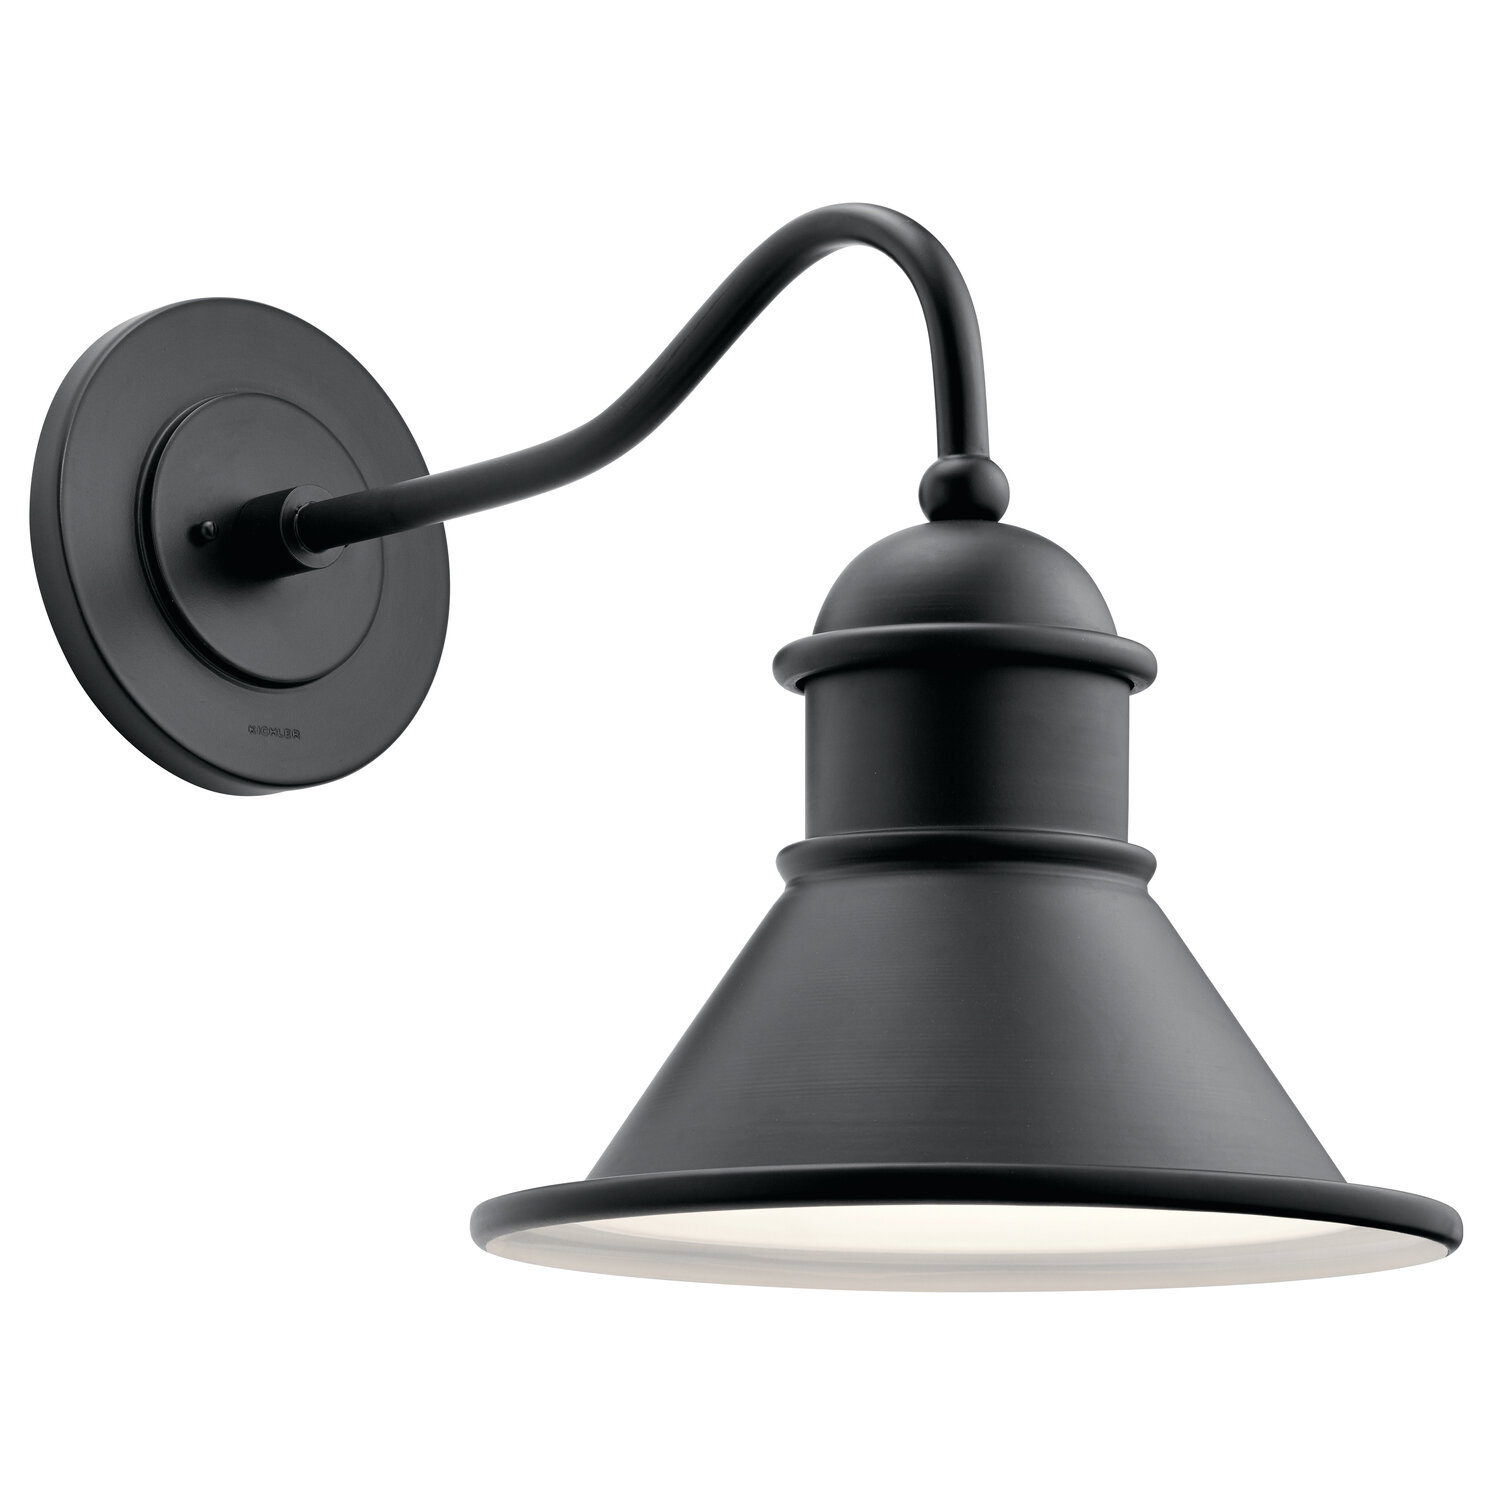 barn light retro bvwhite vintage gooseneck metal white mounted shade rakuten shop sconce industrial yescomusa black wall product